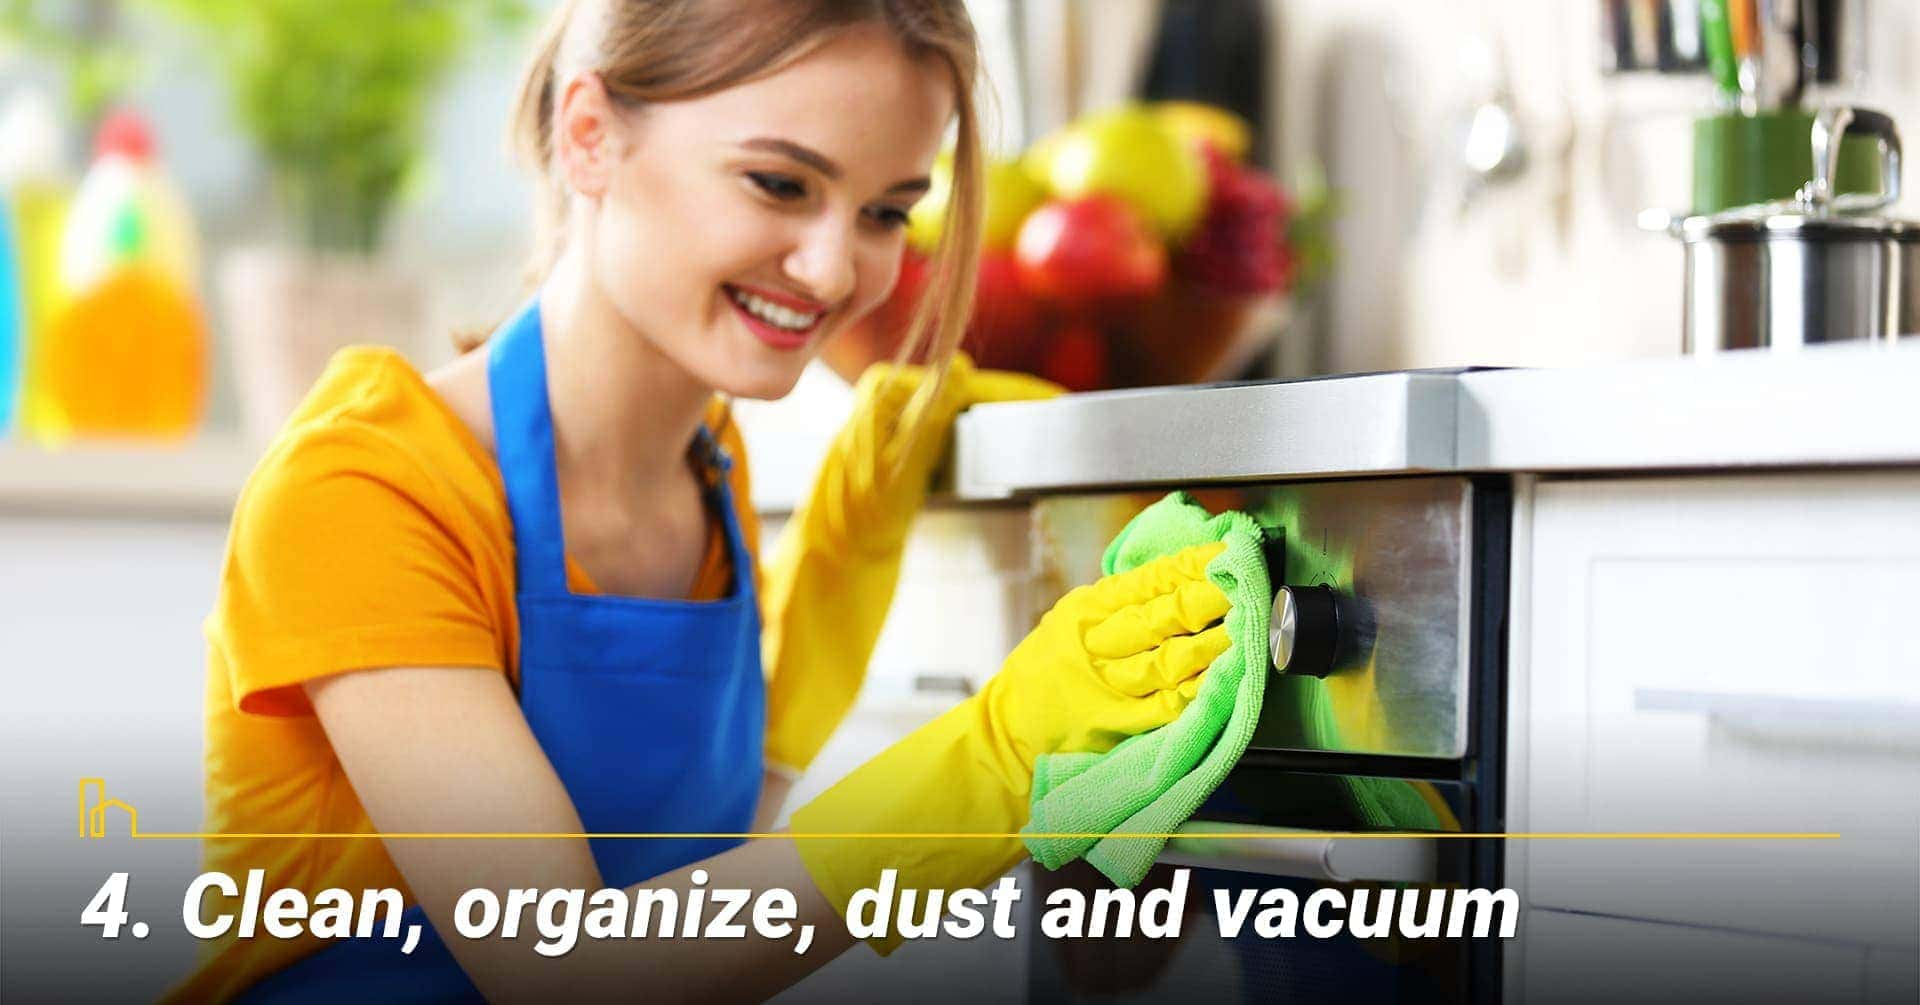 Clean, organize, dust and vacuum, keep your home clean